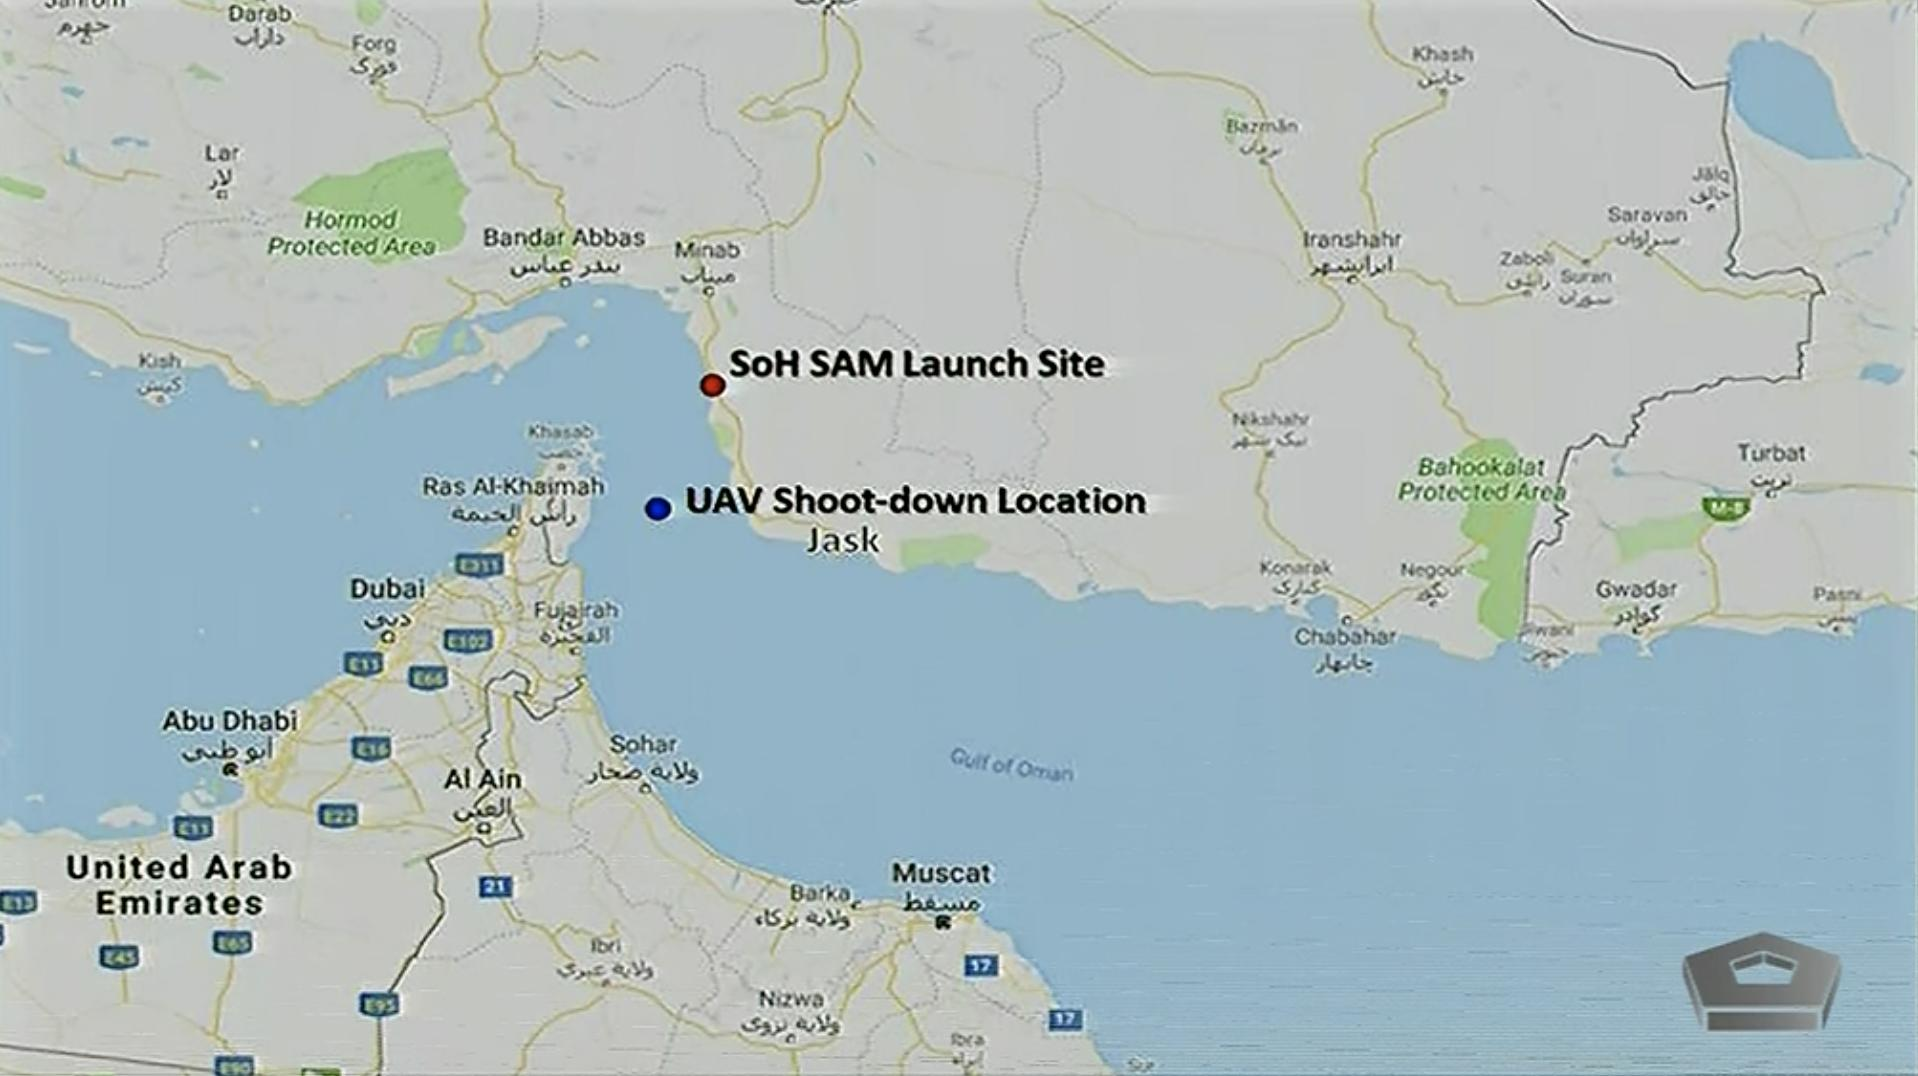 Iran Says U.S. 'Lying' About Where Drone Was Shot Down